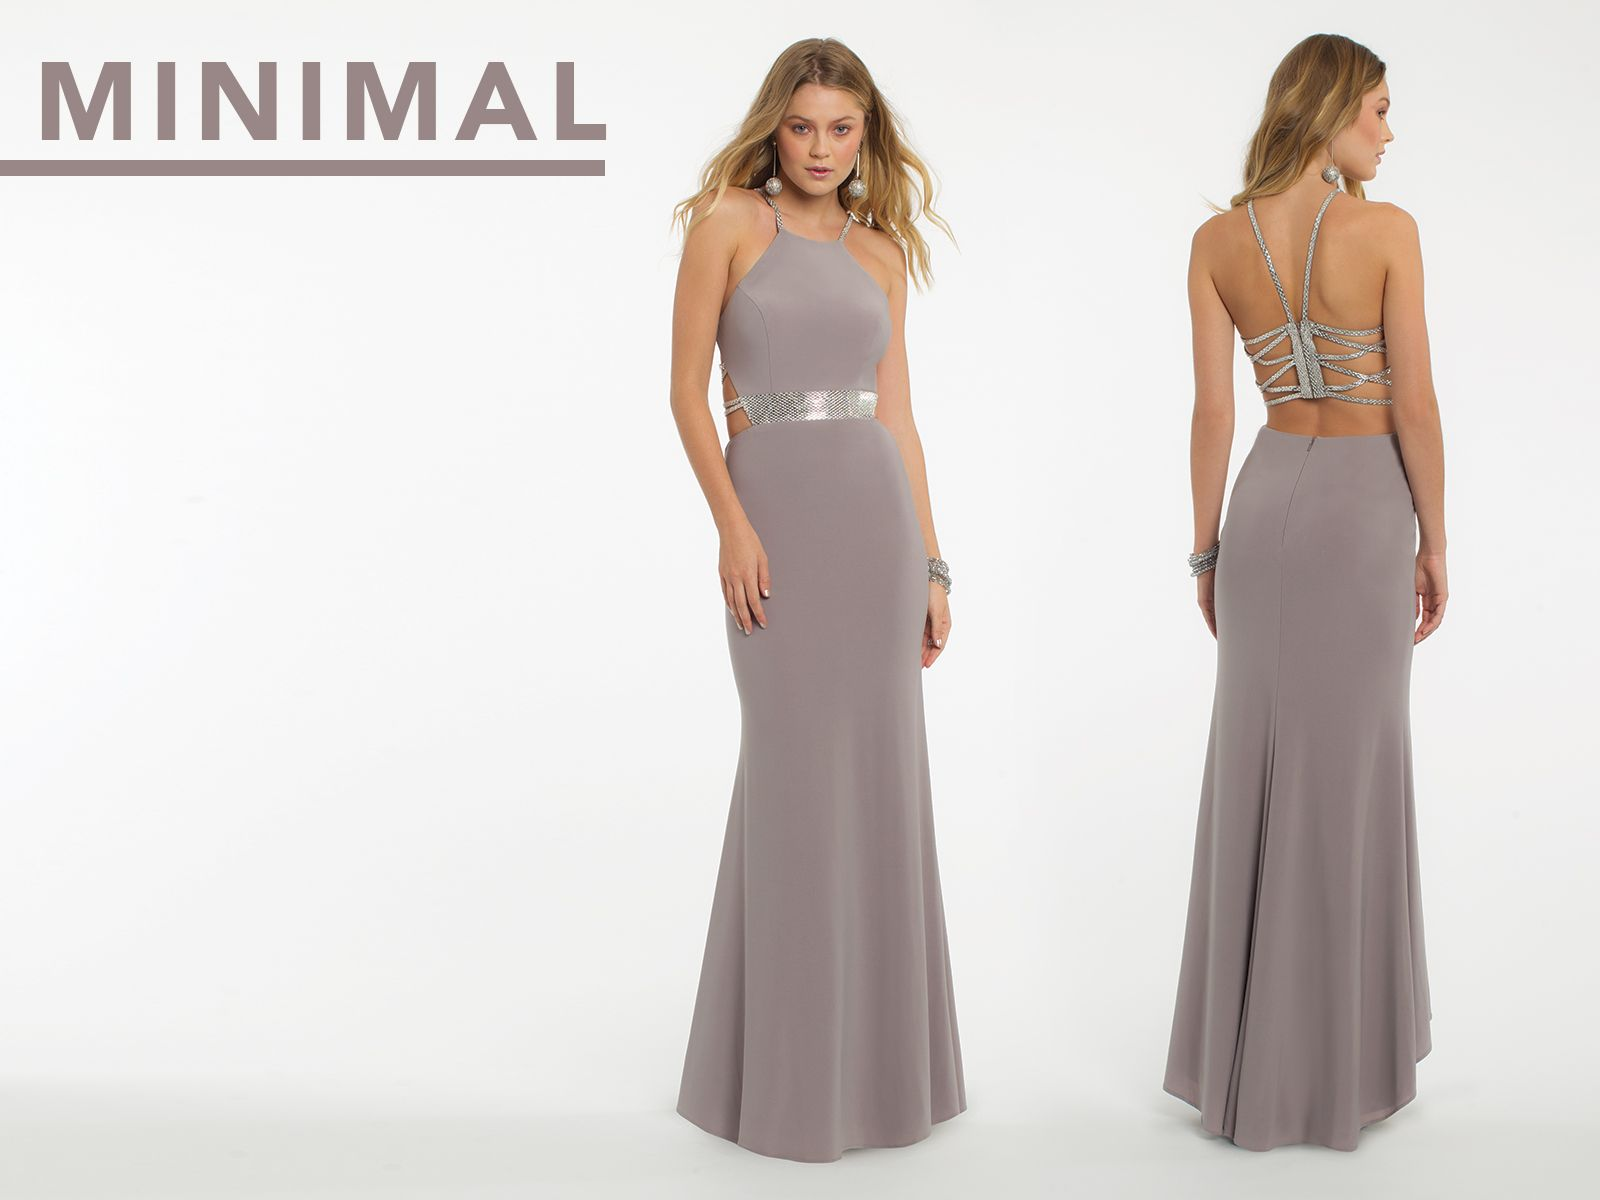 Prom Dresses For 5 Types Of Style Fashion Dresses Types Of Fashion Styles [ 1200 x 1600 Pixel ]